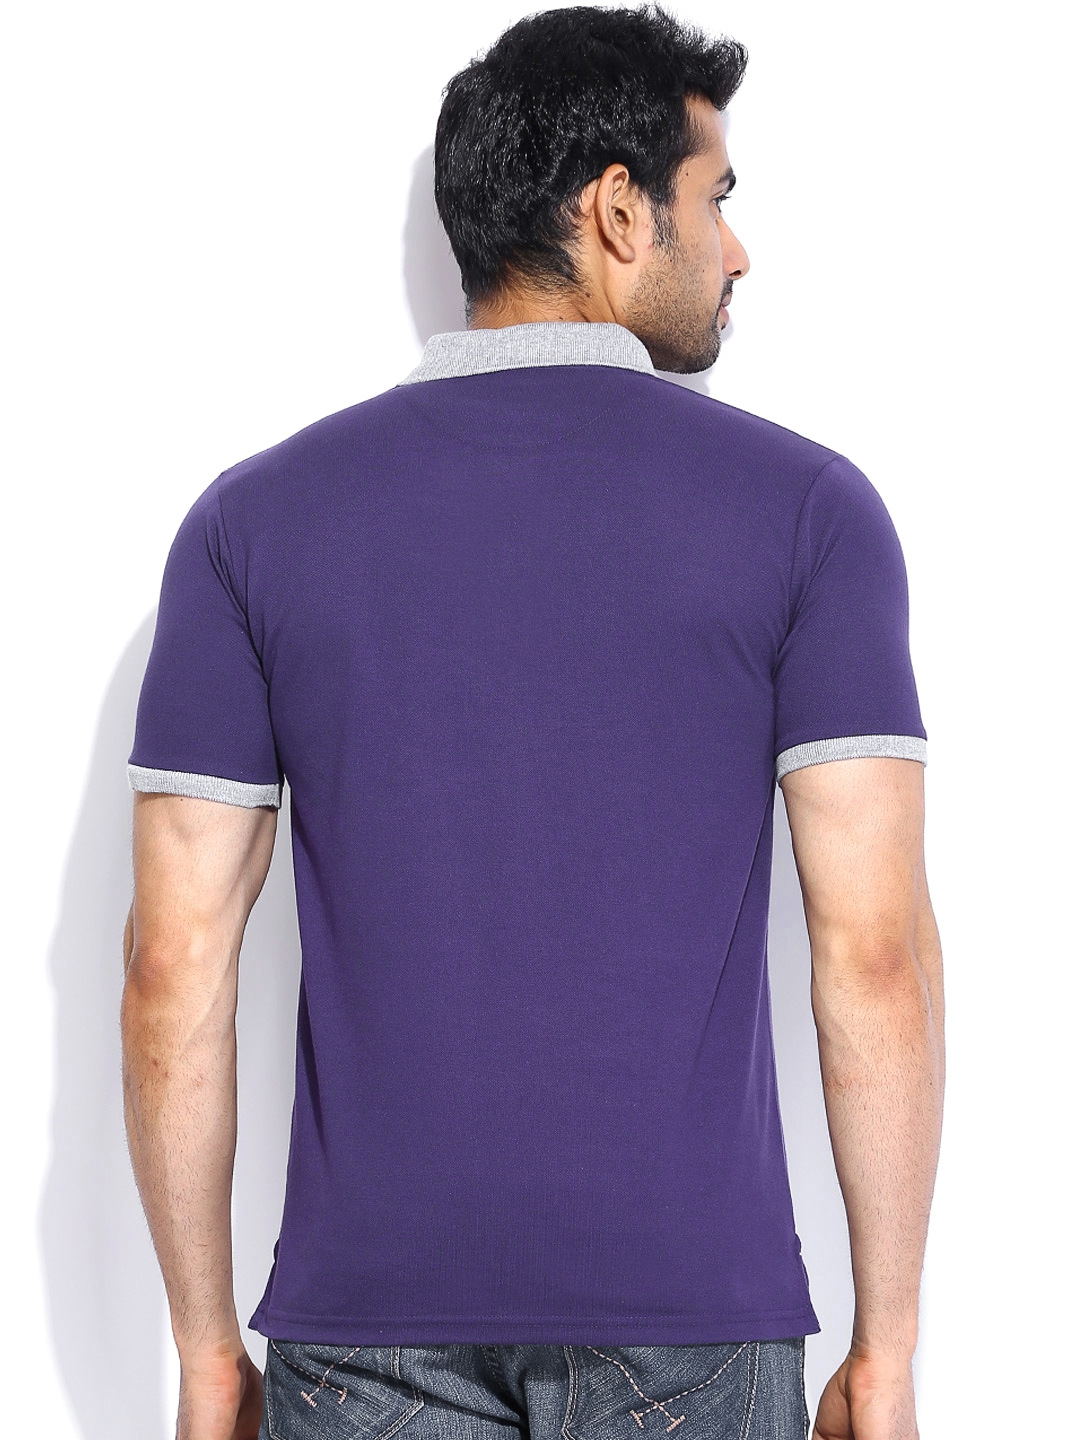 Polo t shirts online myntra for Myntra t shirt design